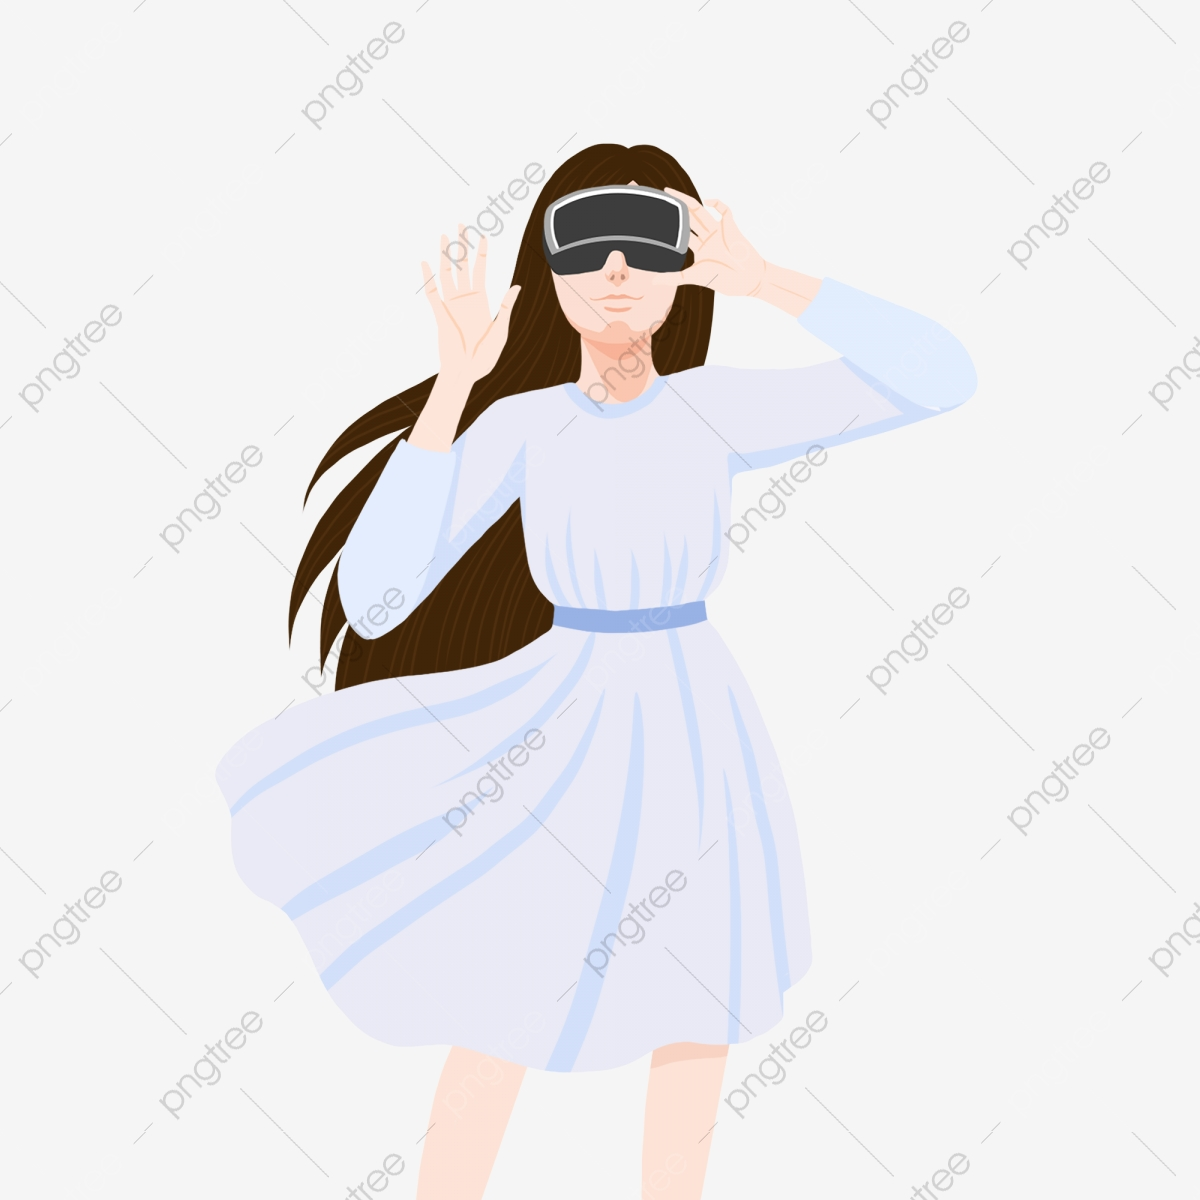 Cartoon Little Fresh Girl With Vr Glasses Experiencing Virtual